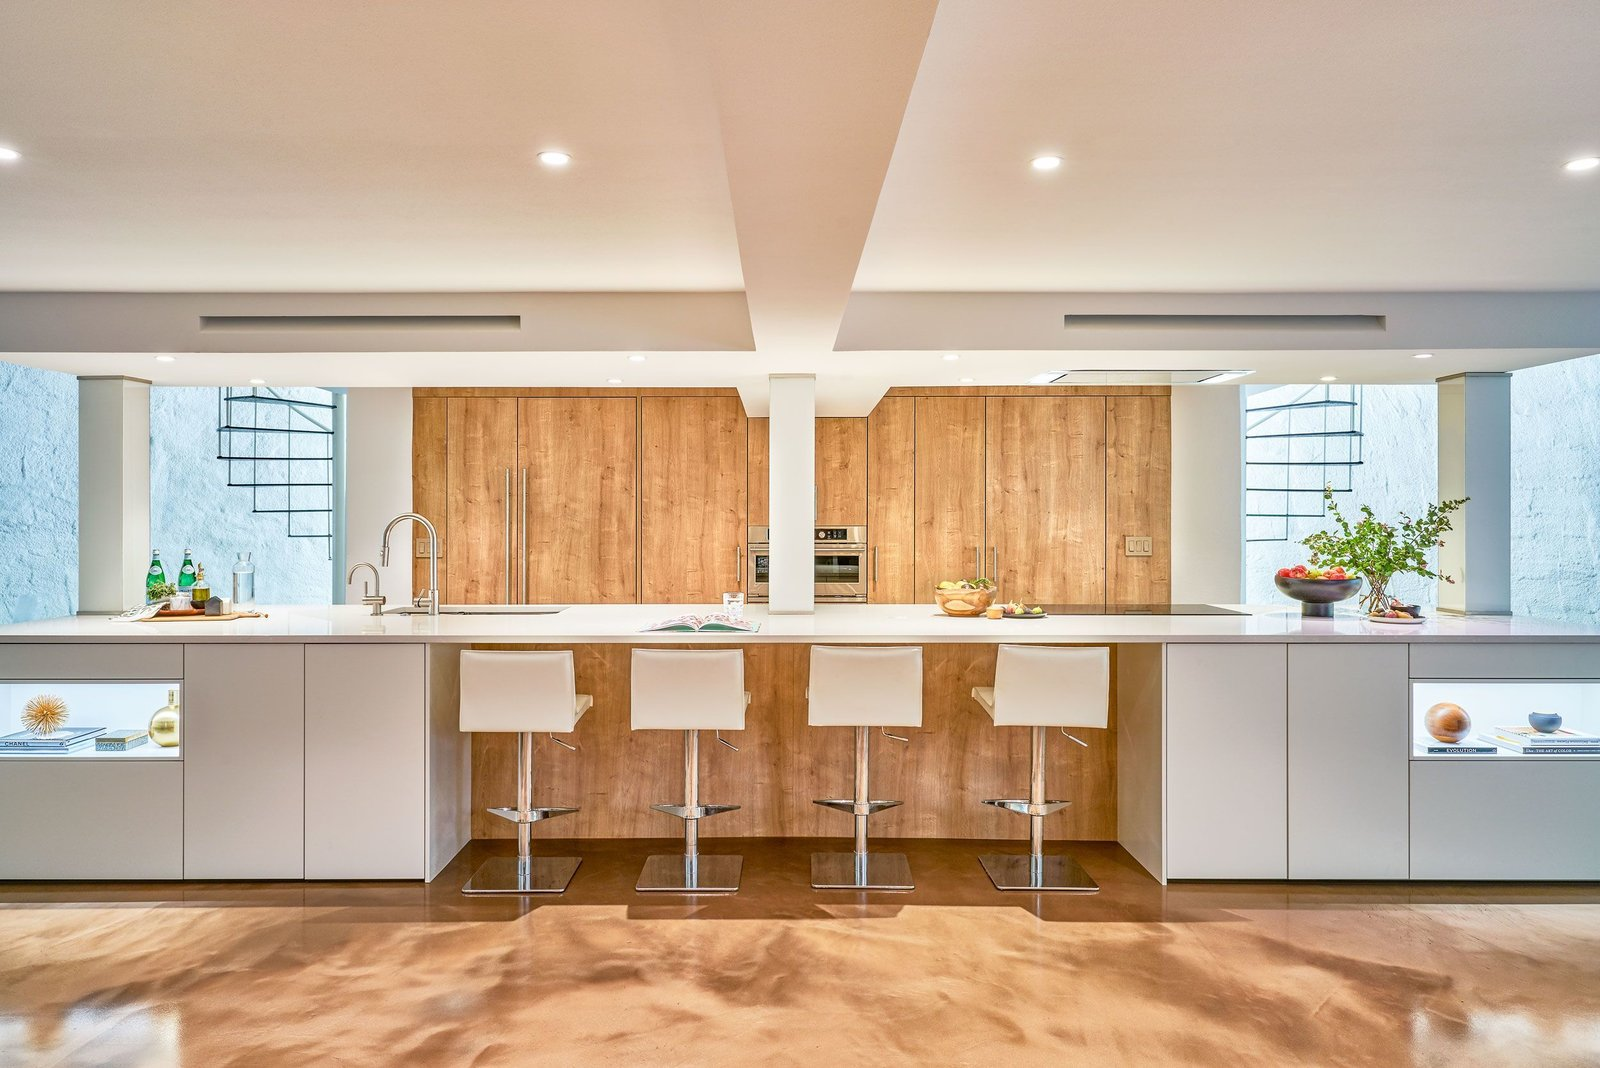 Modern Intervention Kitchen by CG&S Design Build